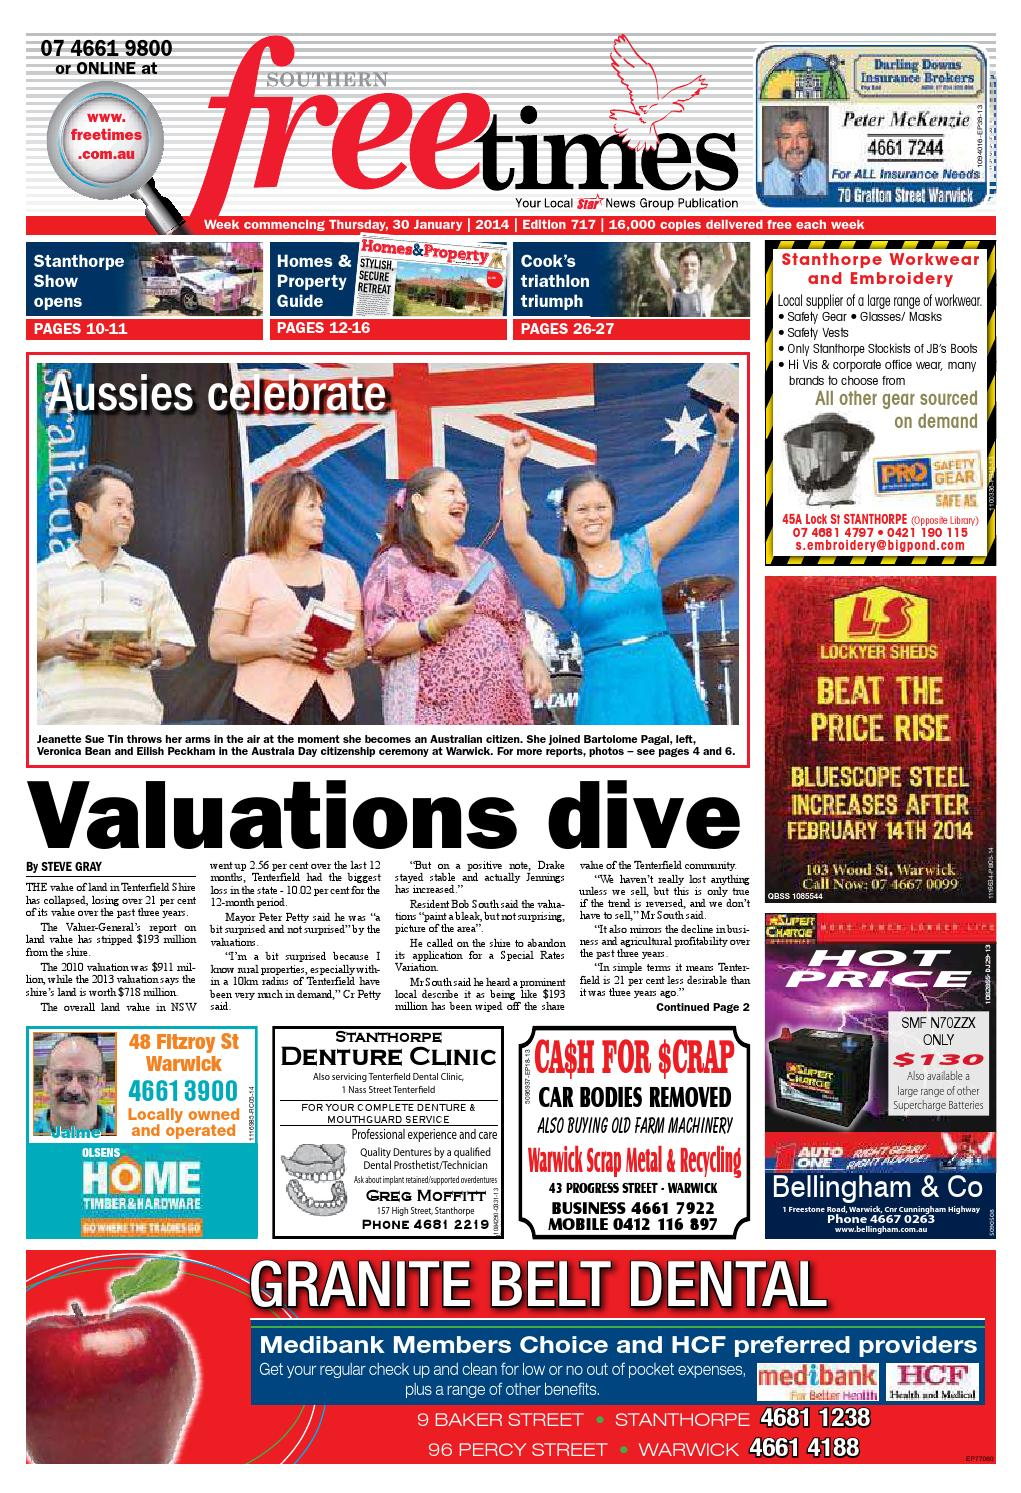 Southern Free Times 30th January 2016